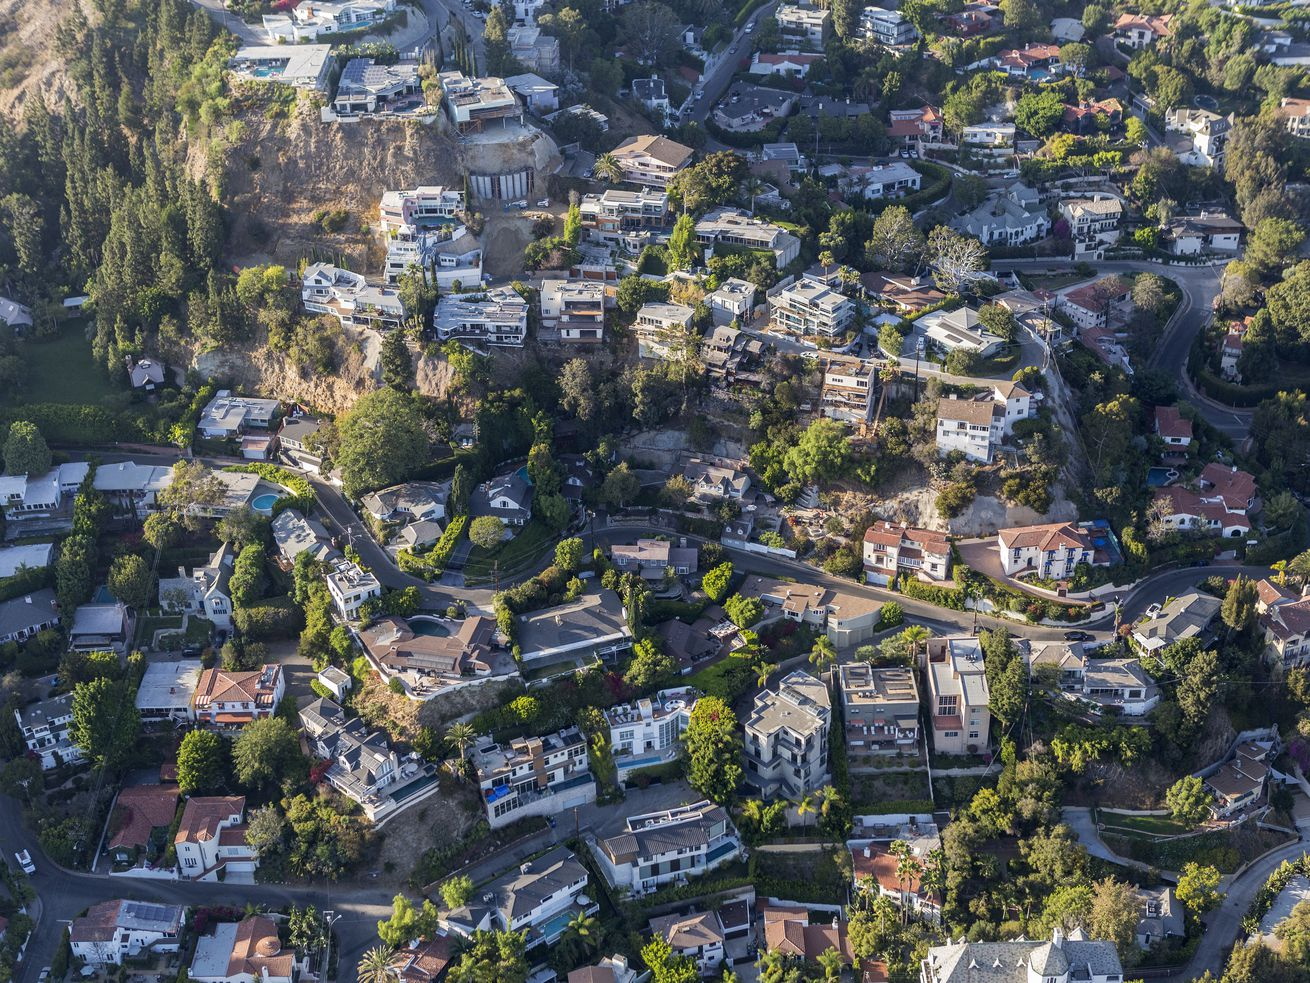 Roughly 28 percent of LA's single-family homes are in hillside areas.